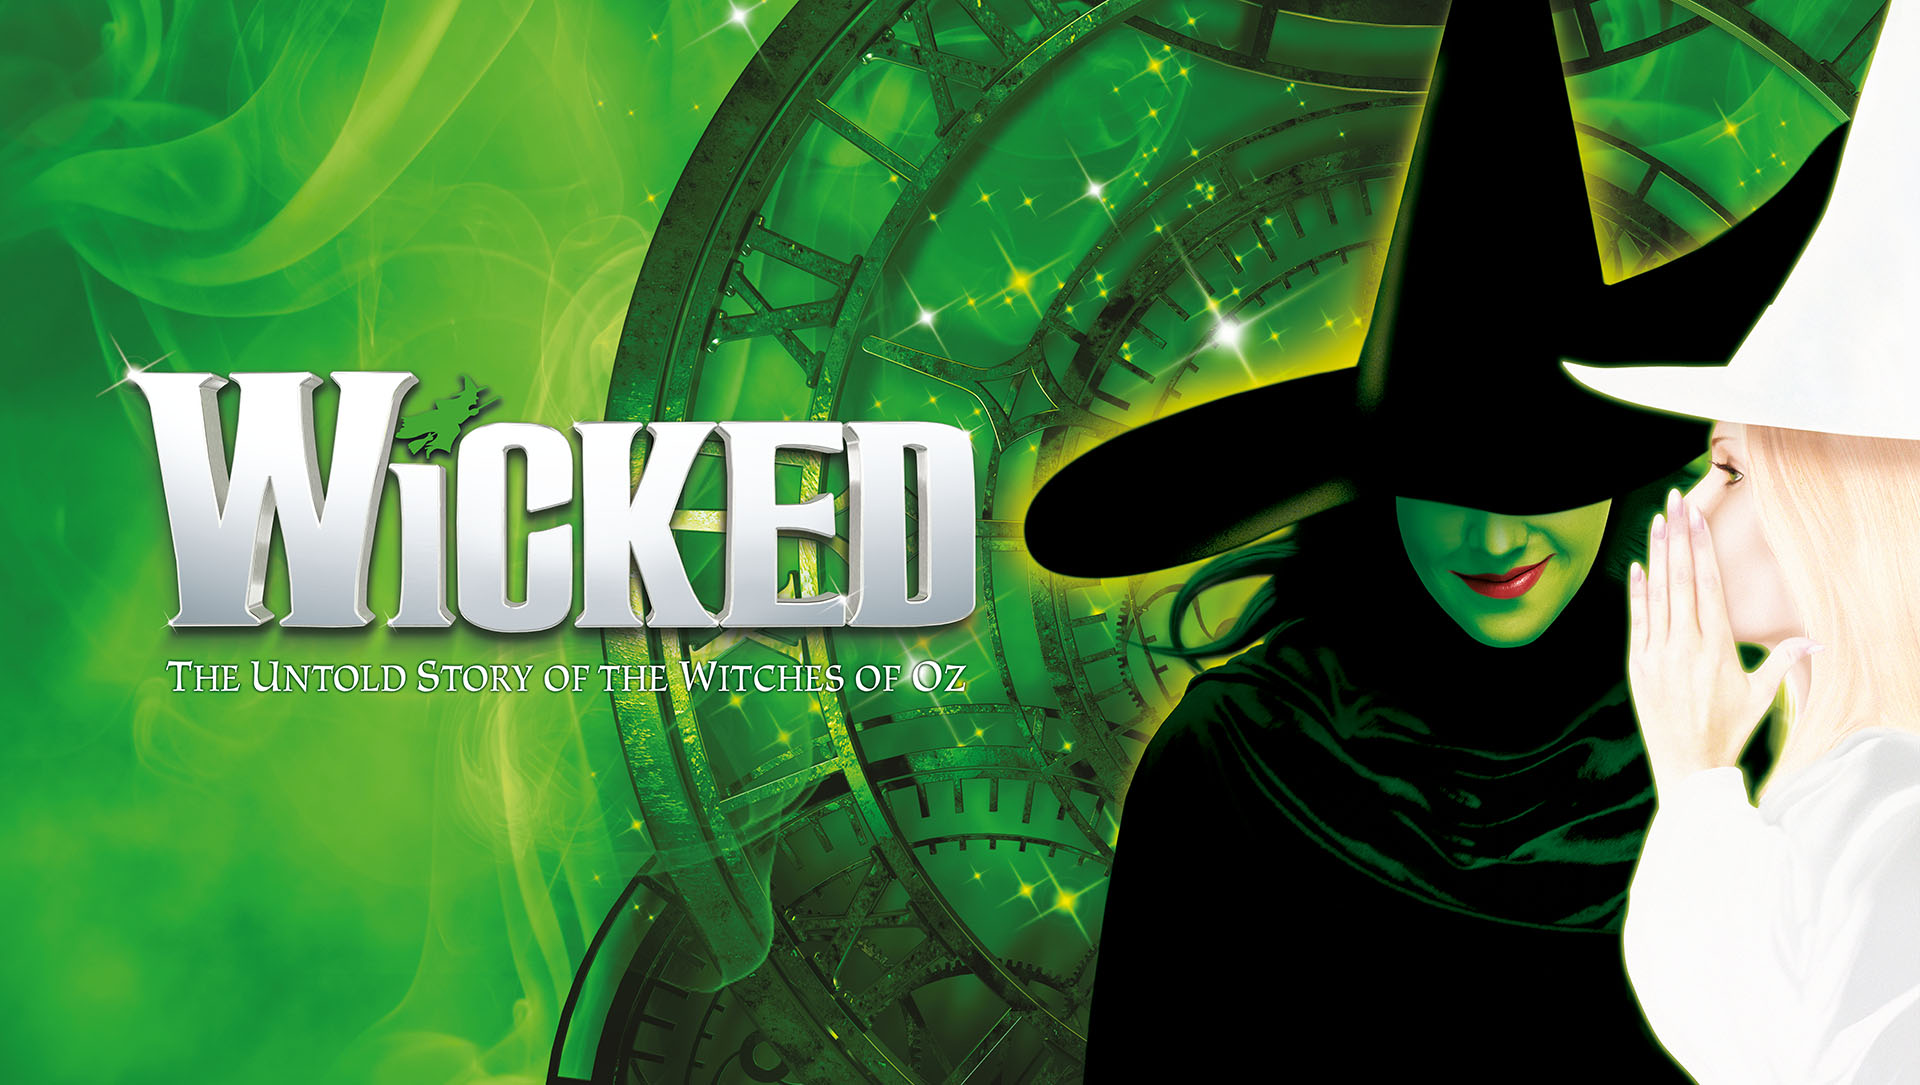 LX 3 Chargehand – Wicked The Musical (West End)